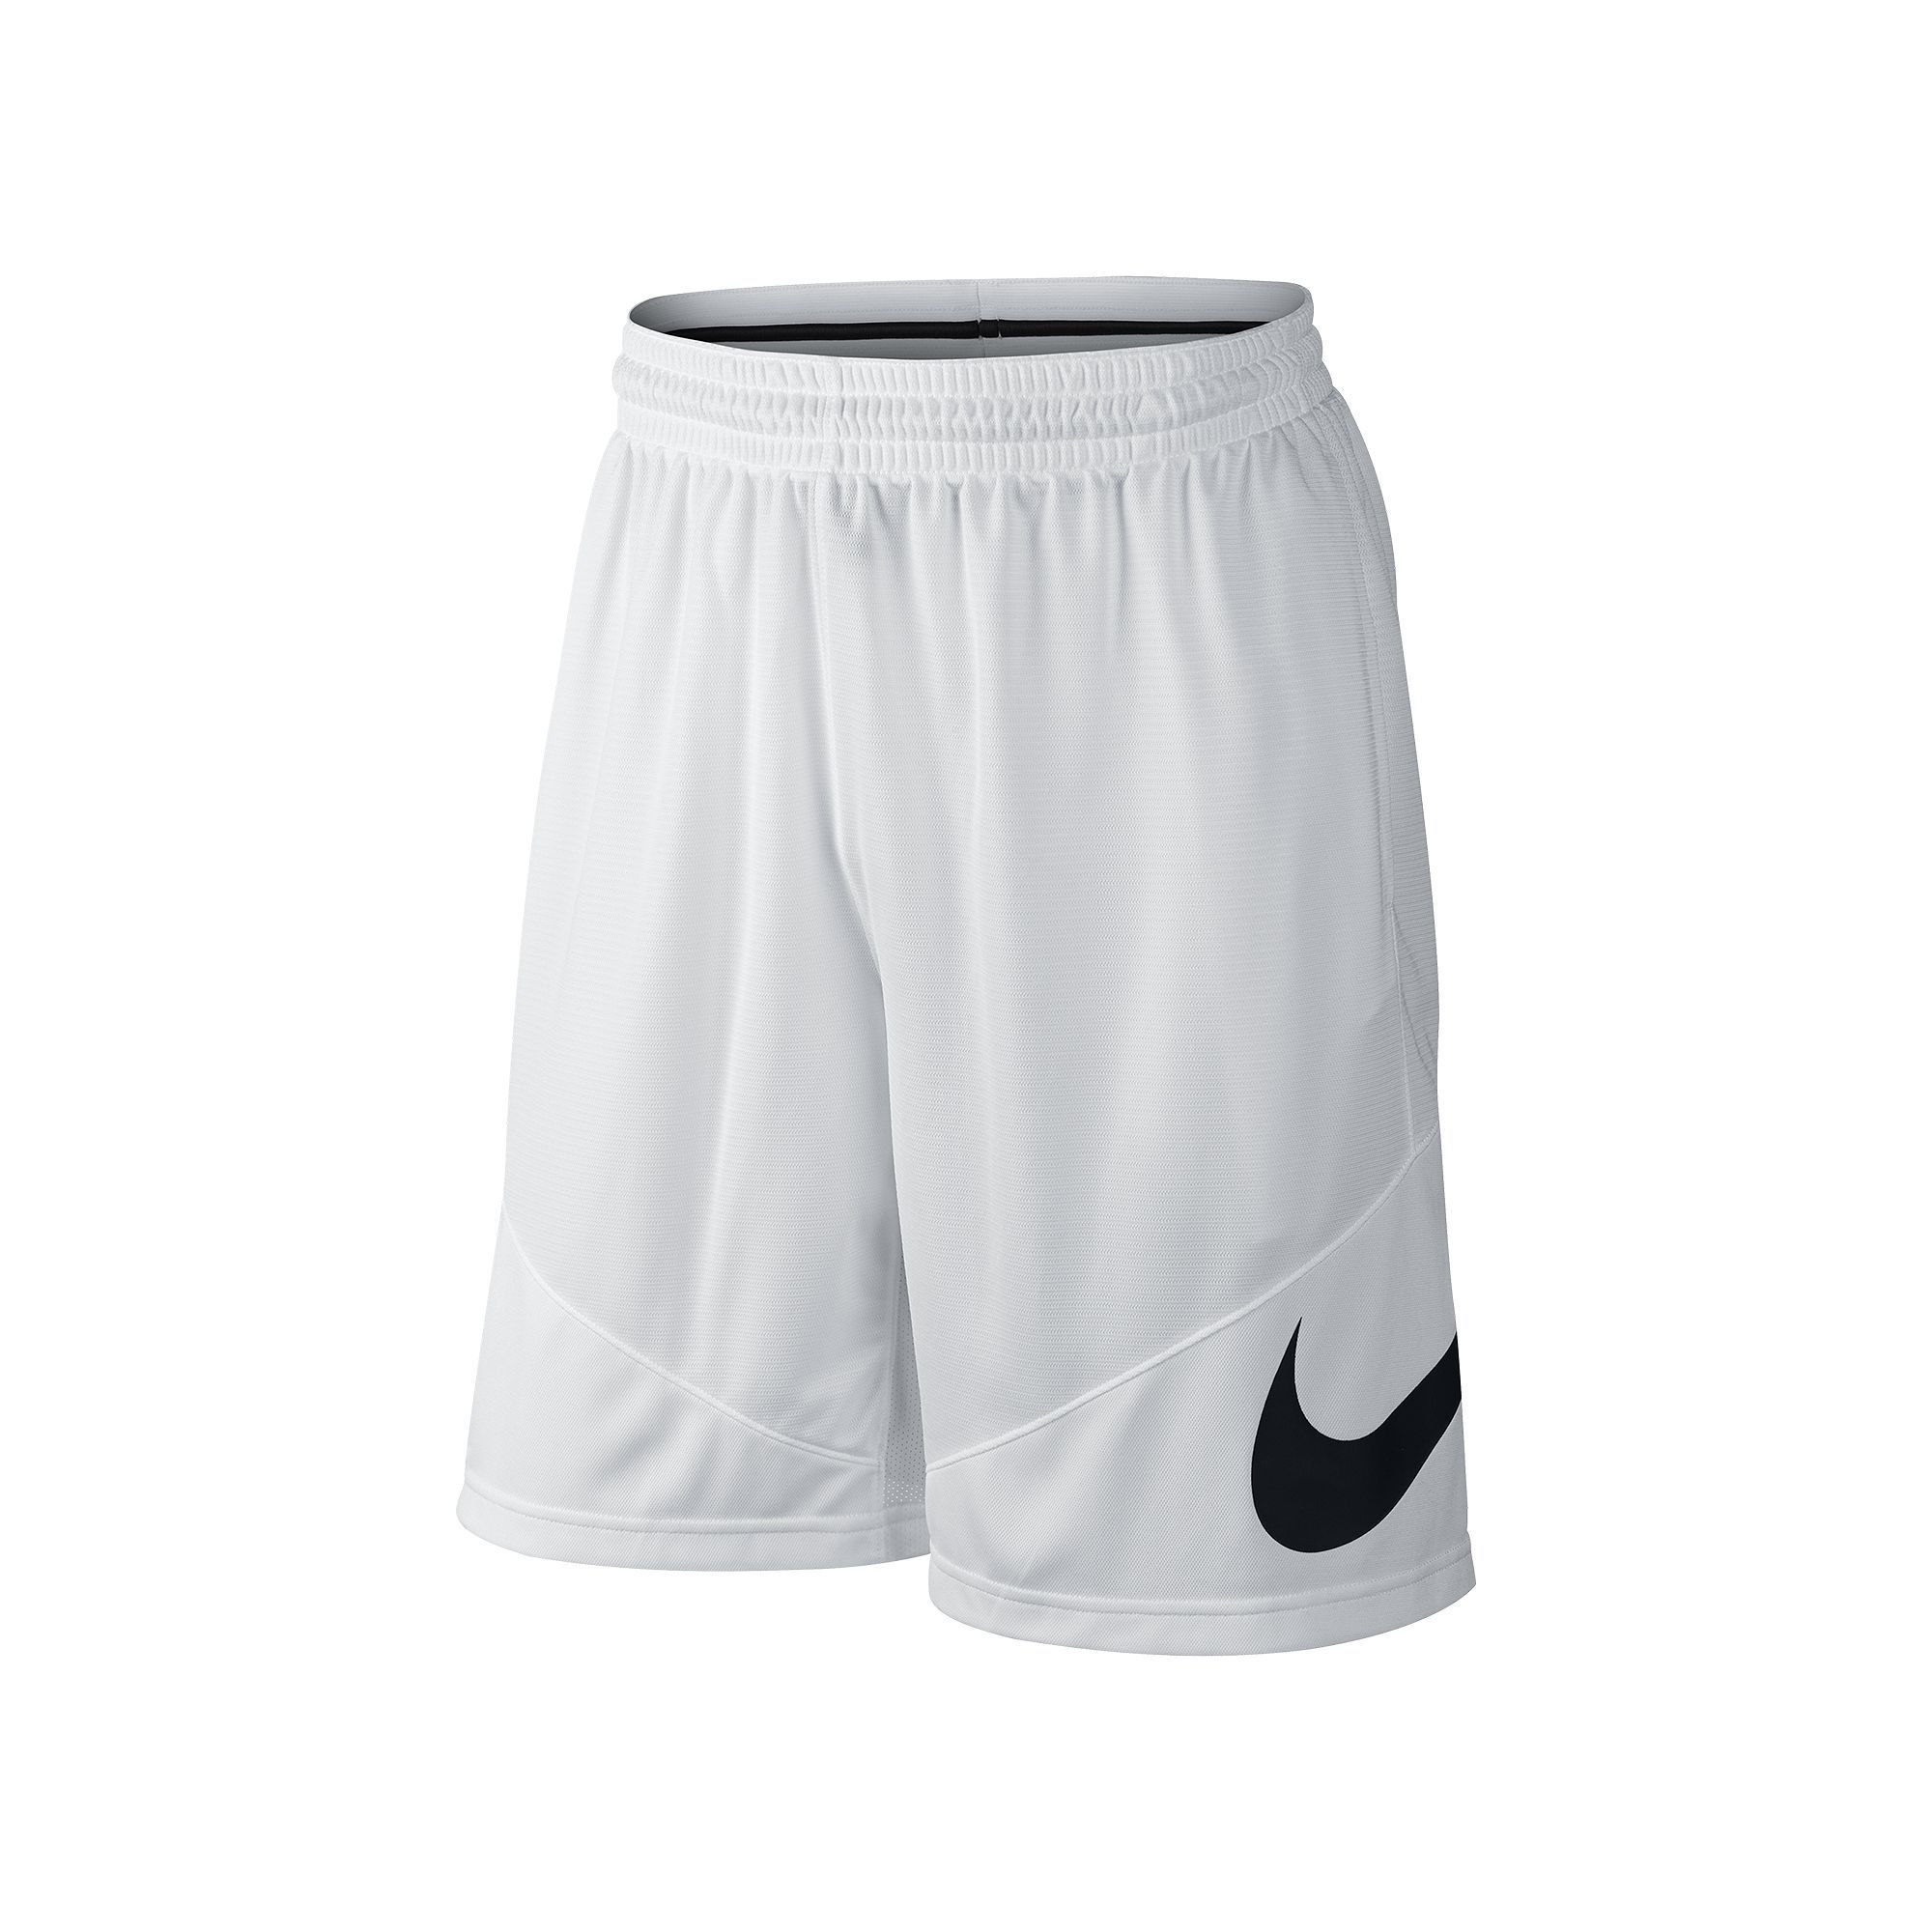 5b6bbb2fcfe8 Big   Tall Nike Dri-FIT Basketball Shorts in 2019